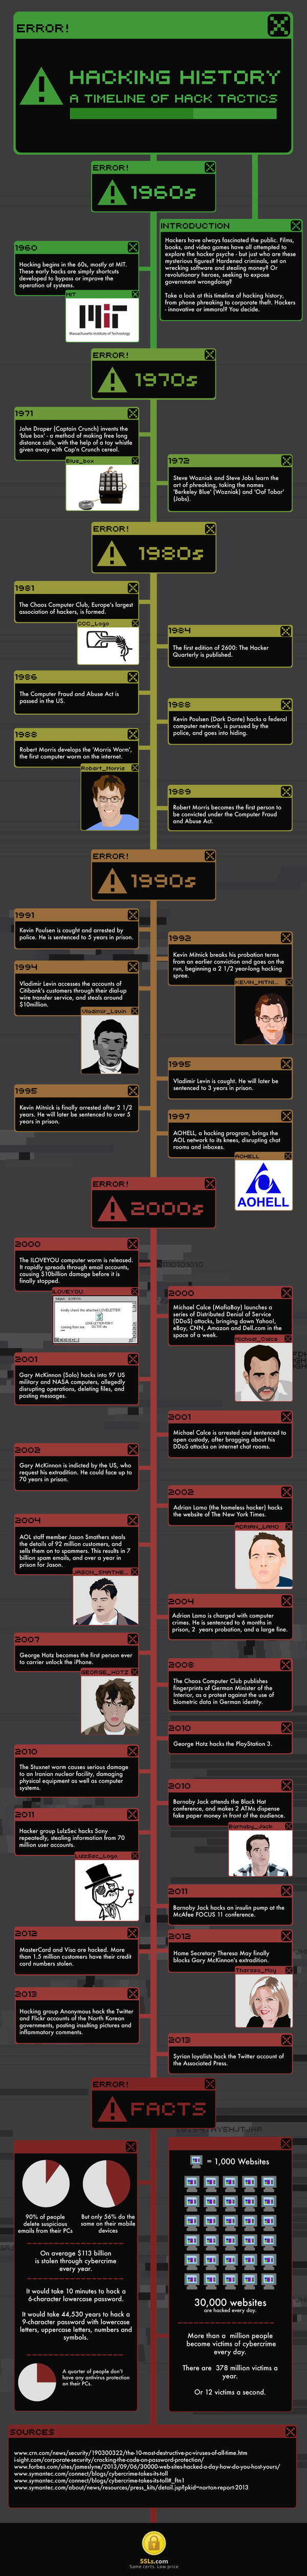 Hacking History: A Timeline of Hack Tactics